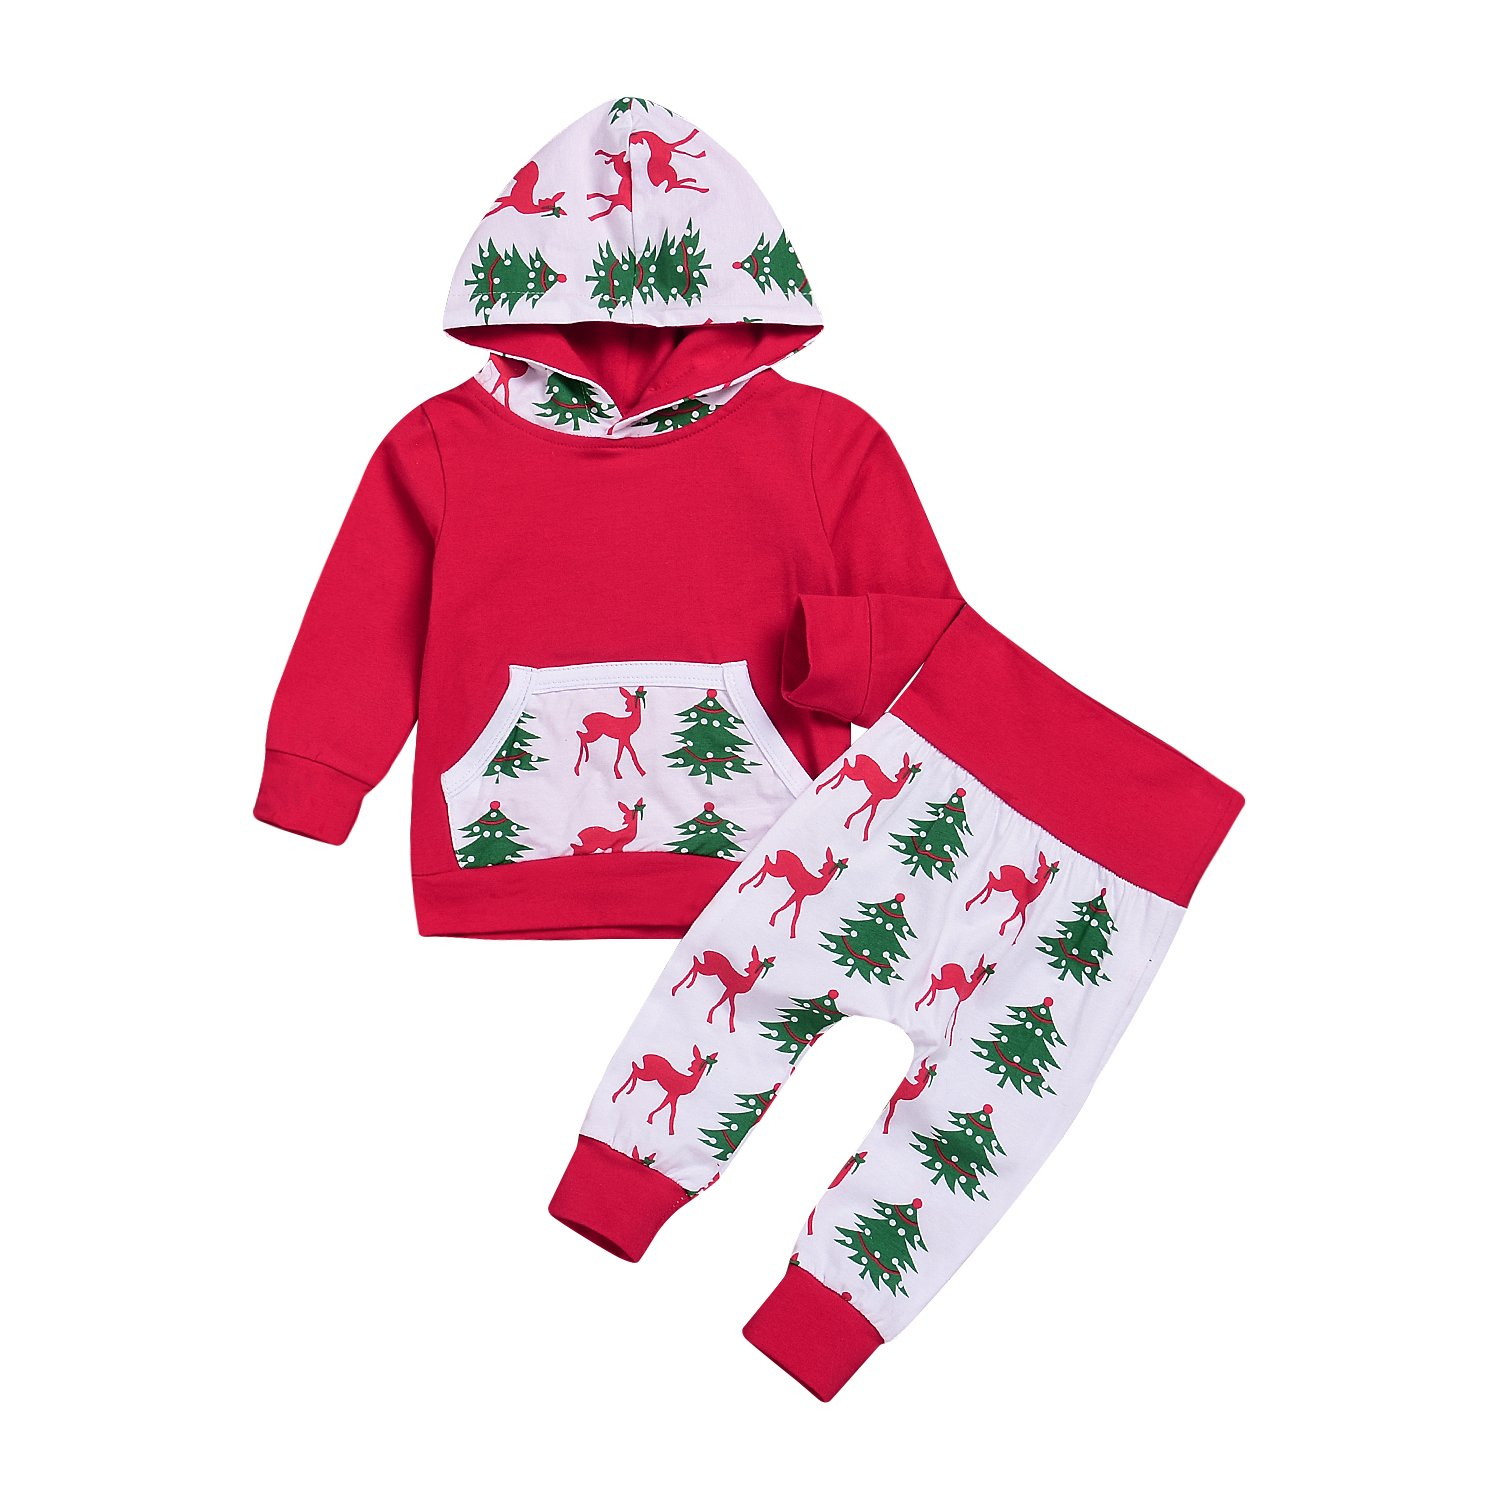 HappyMA Baby Boys Girls Christmas Clothes Deer& Tree Print Long Sleeve Hoodie+Long Pants Outfit